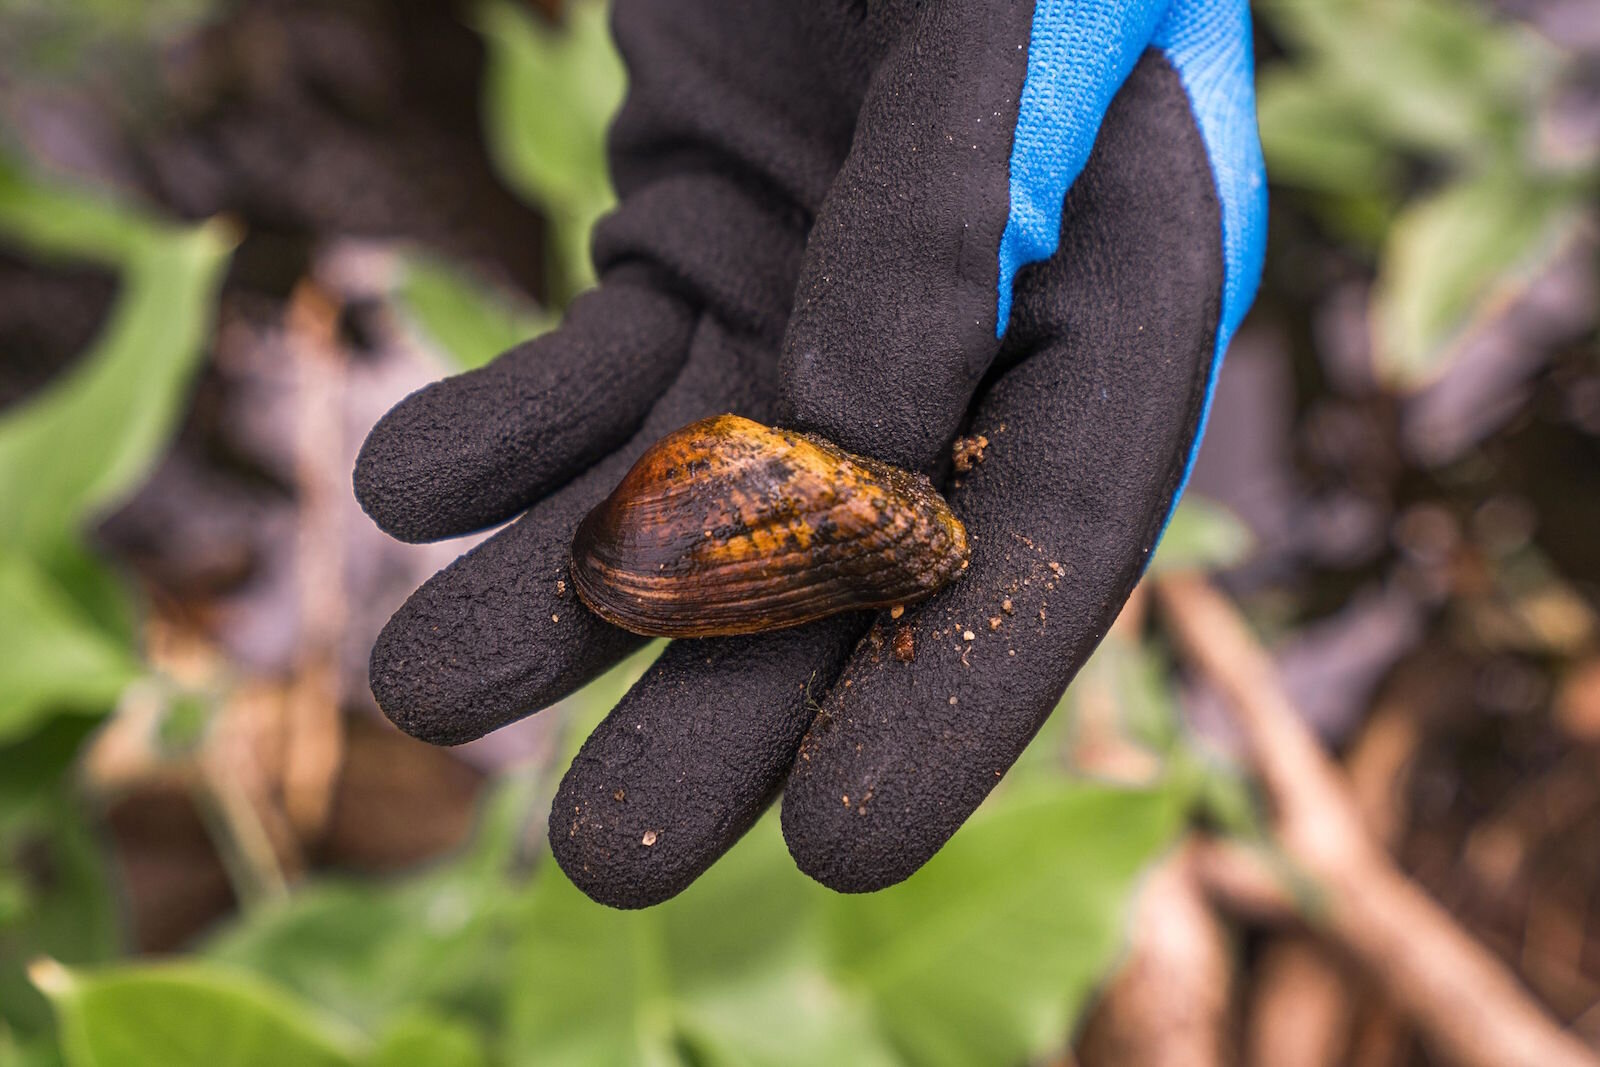 Researchers have been very excited to find the rare snuffbox mussel in Portage Creek at the site of The Mill at Vicksburg.